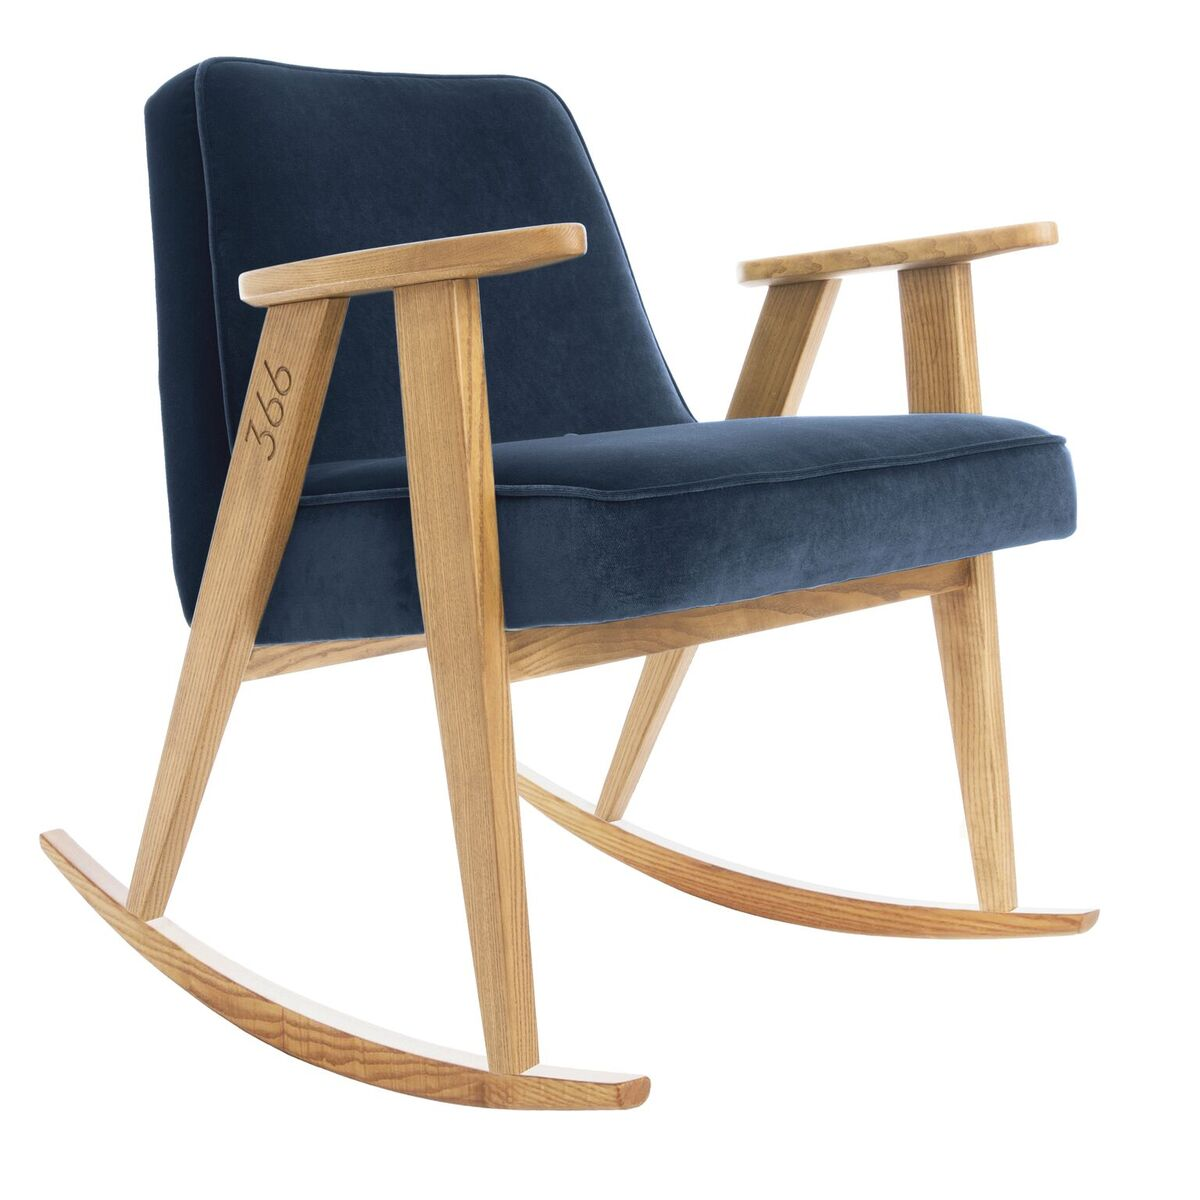 rocking chair 366_velours_fauteuil 366_366 concept_jozef chierowski_slavia vintage_navy blue